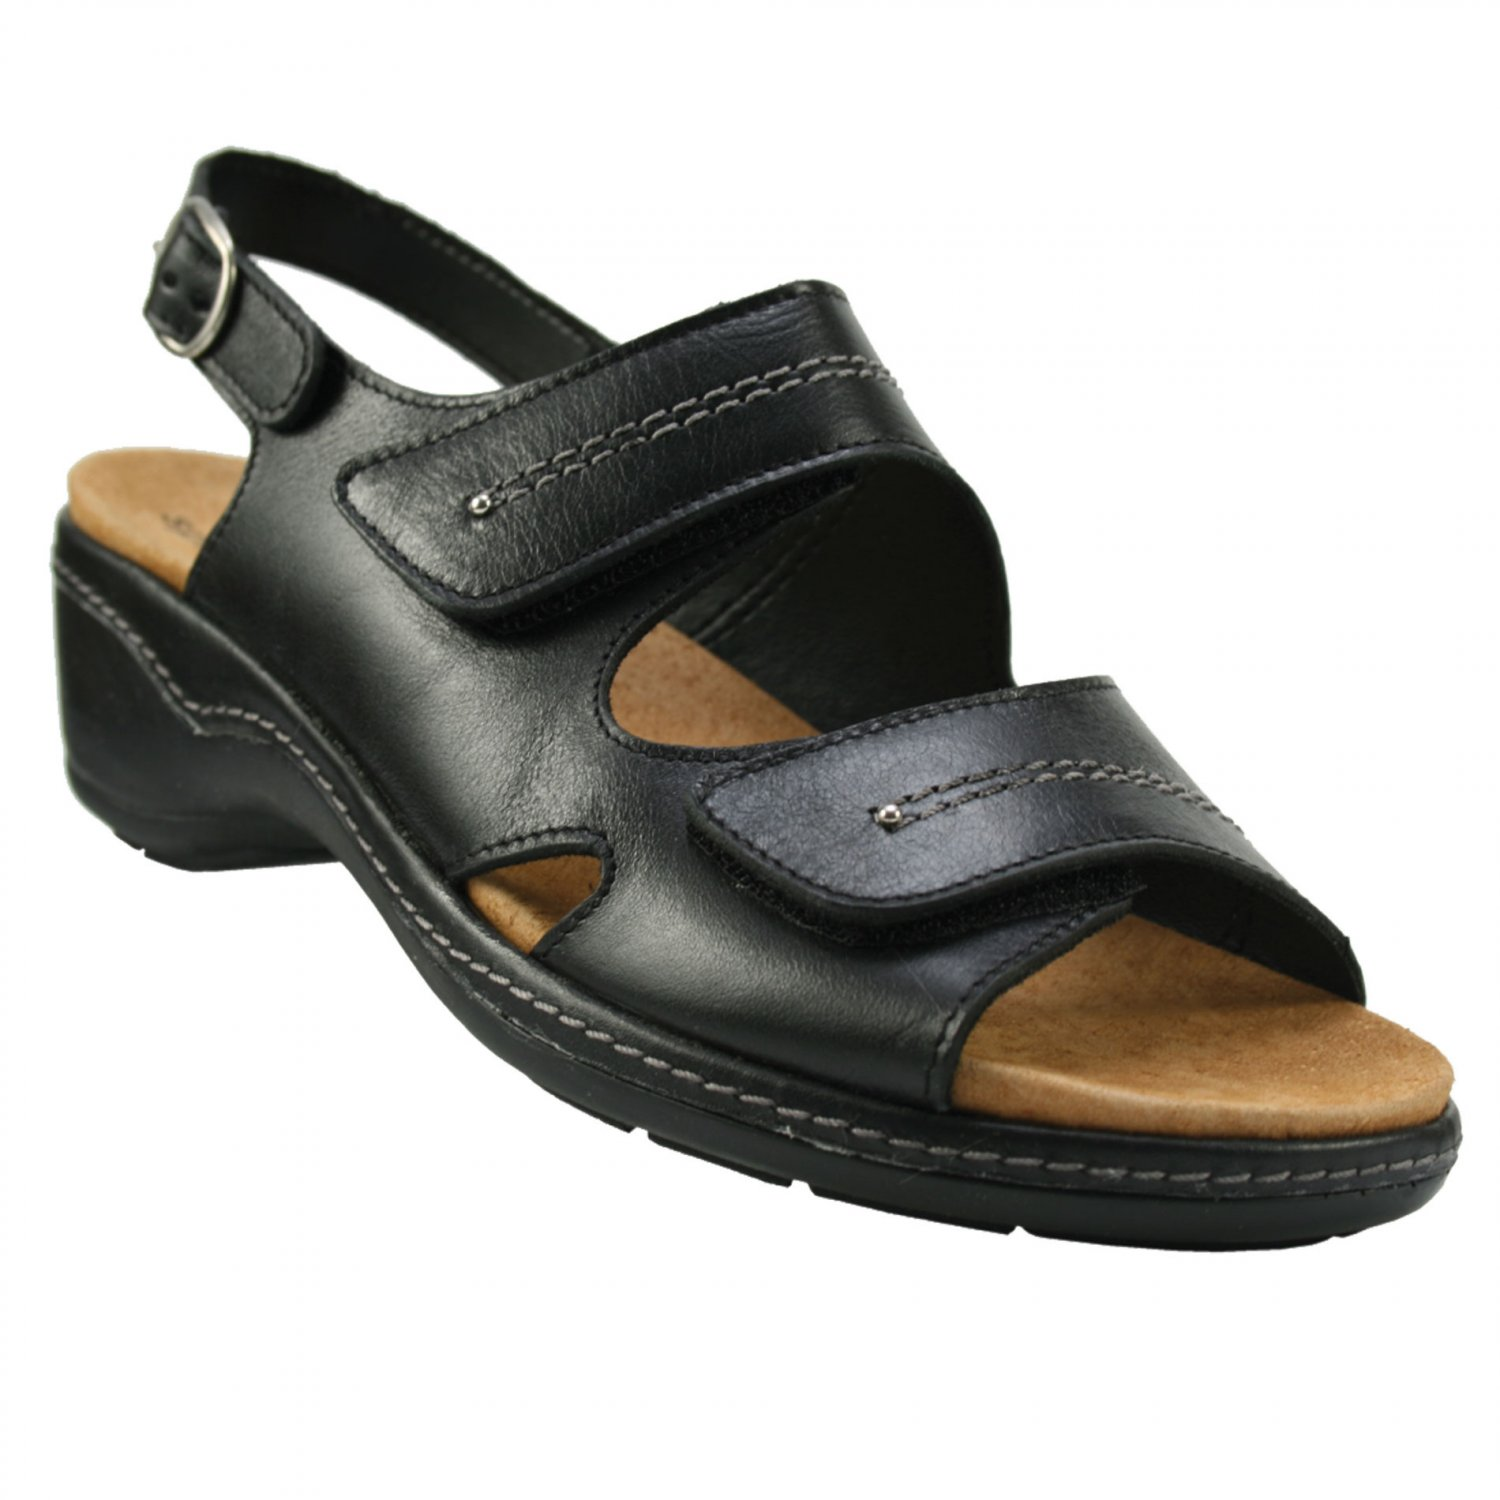 Spring Step KATIMA Sandals Shoes All Sizes & Colors $8